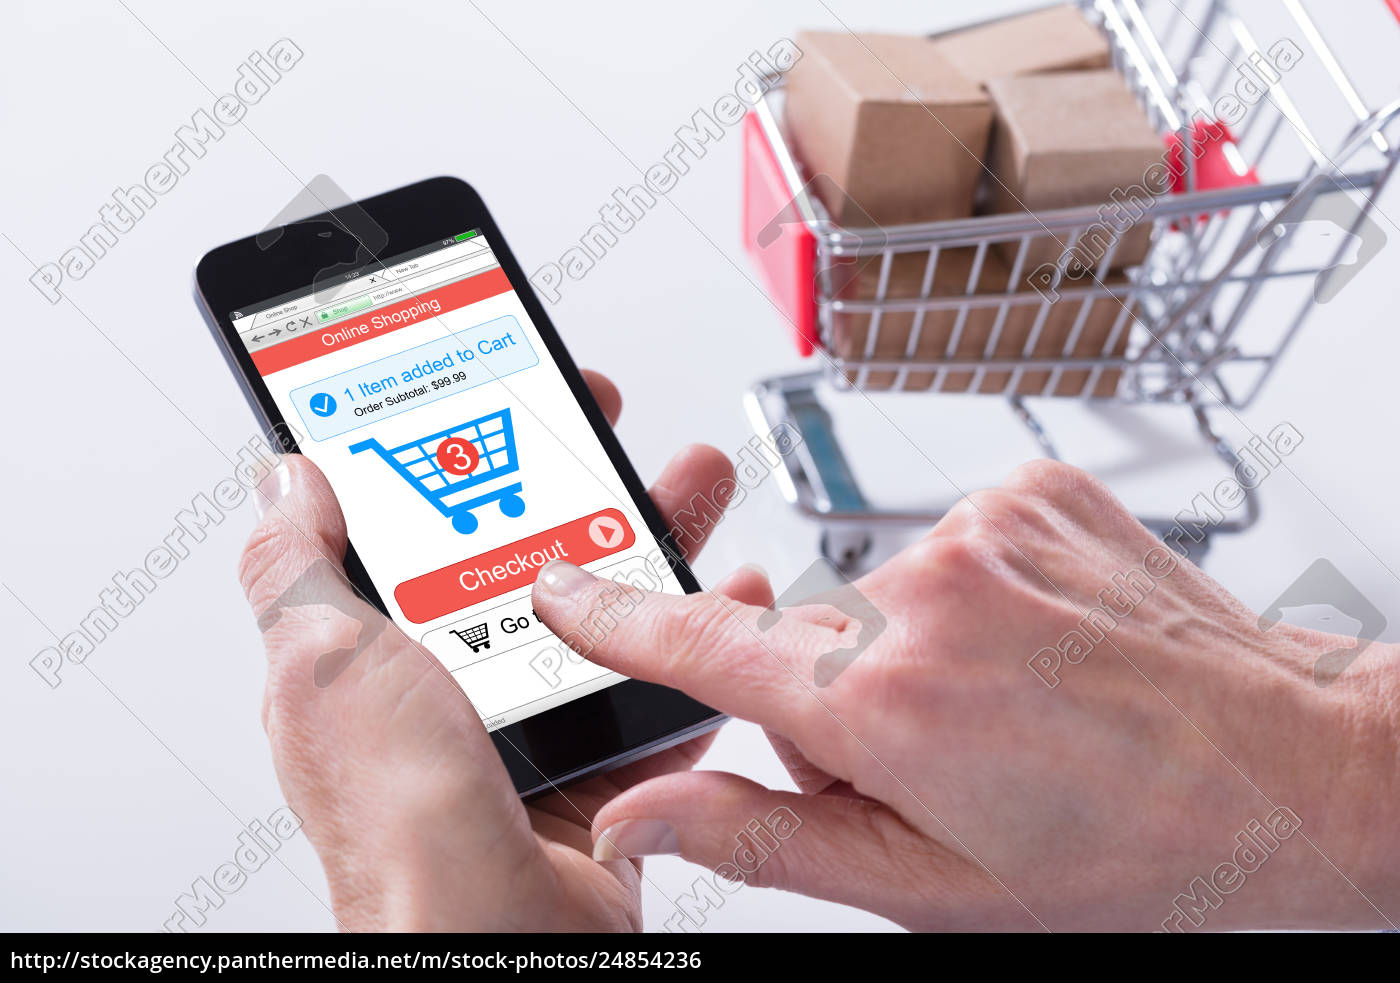 Royalty free photo 24854236 - Person Using Online Shopping Application On  Mobile Phone